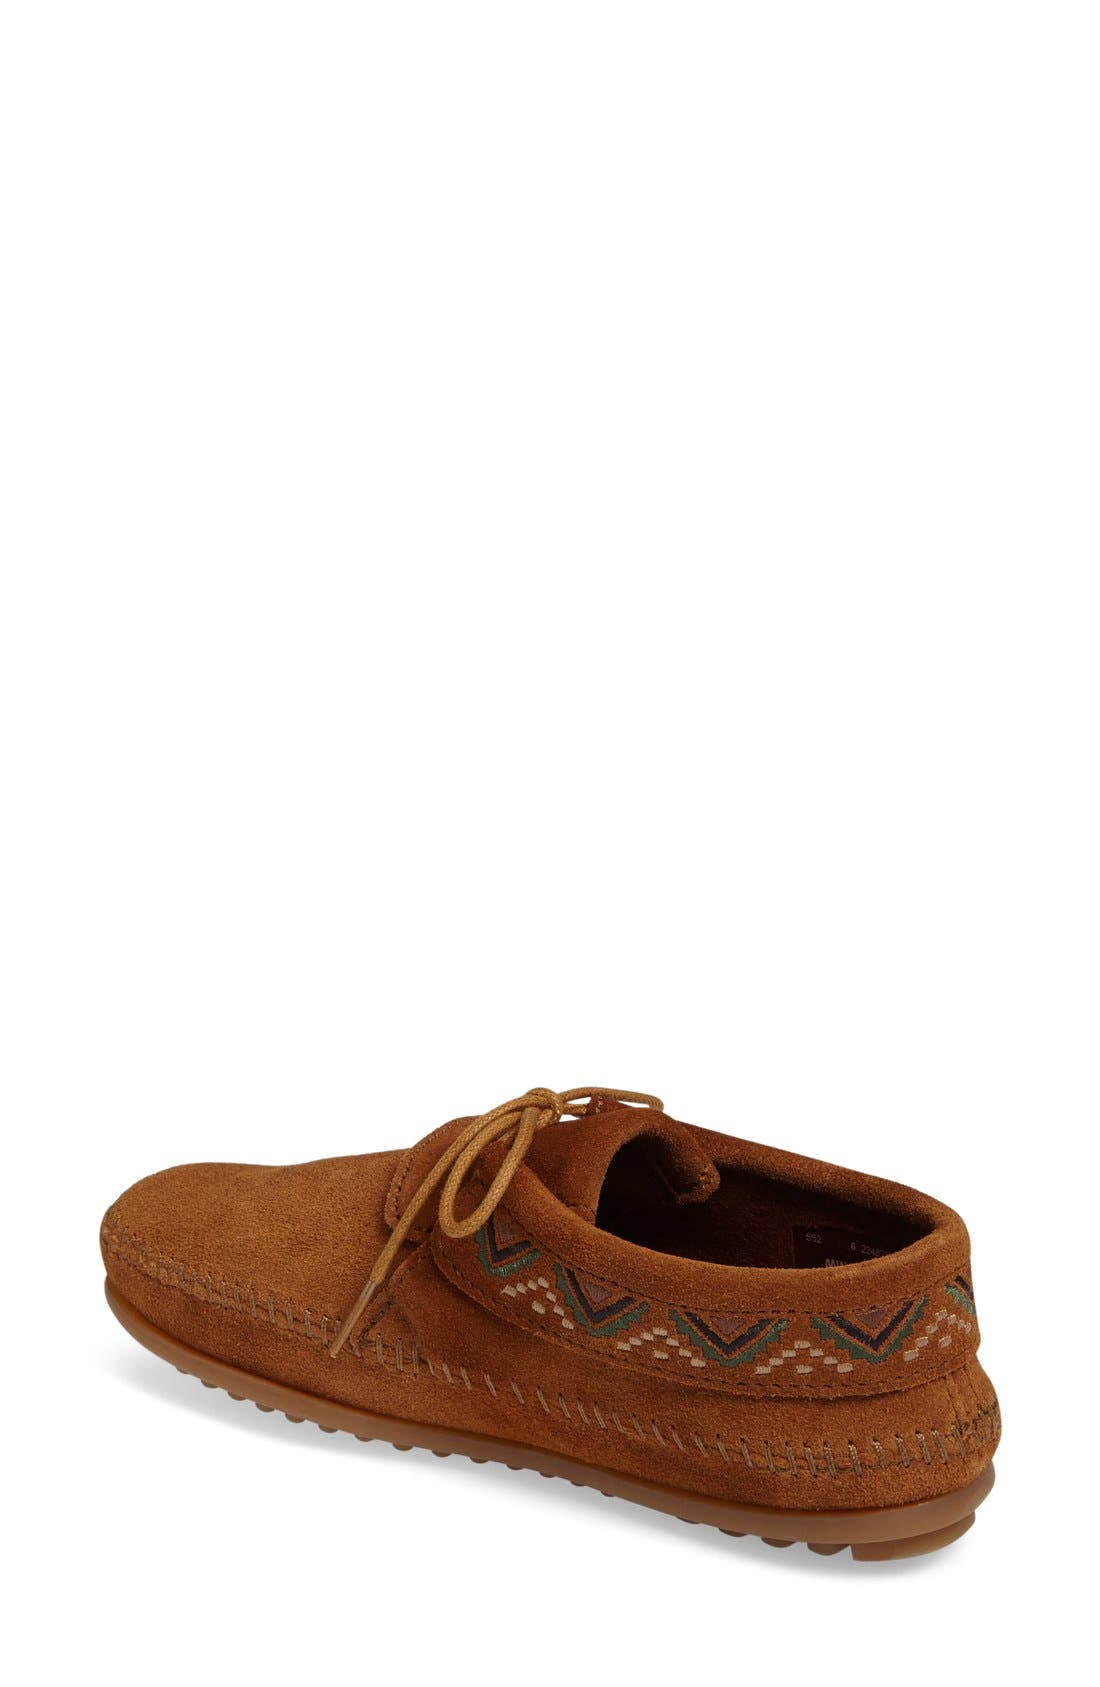 Mosaic Embroidered Moccasin,                             Alternate thumbnail 2, color,                             Brown Suede